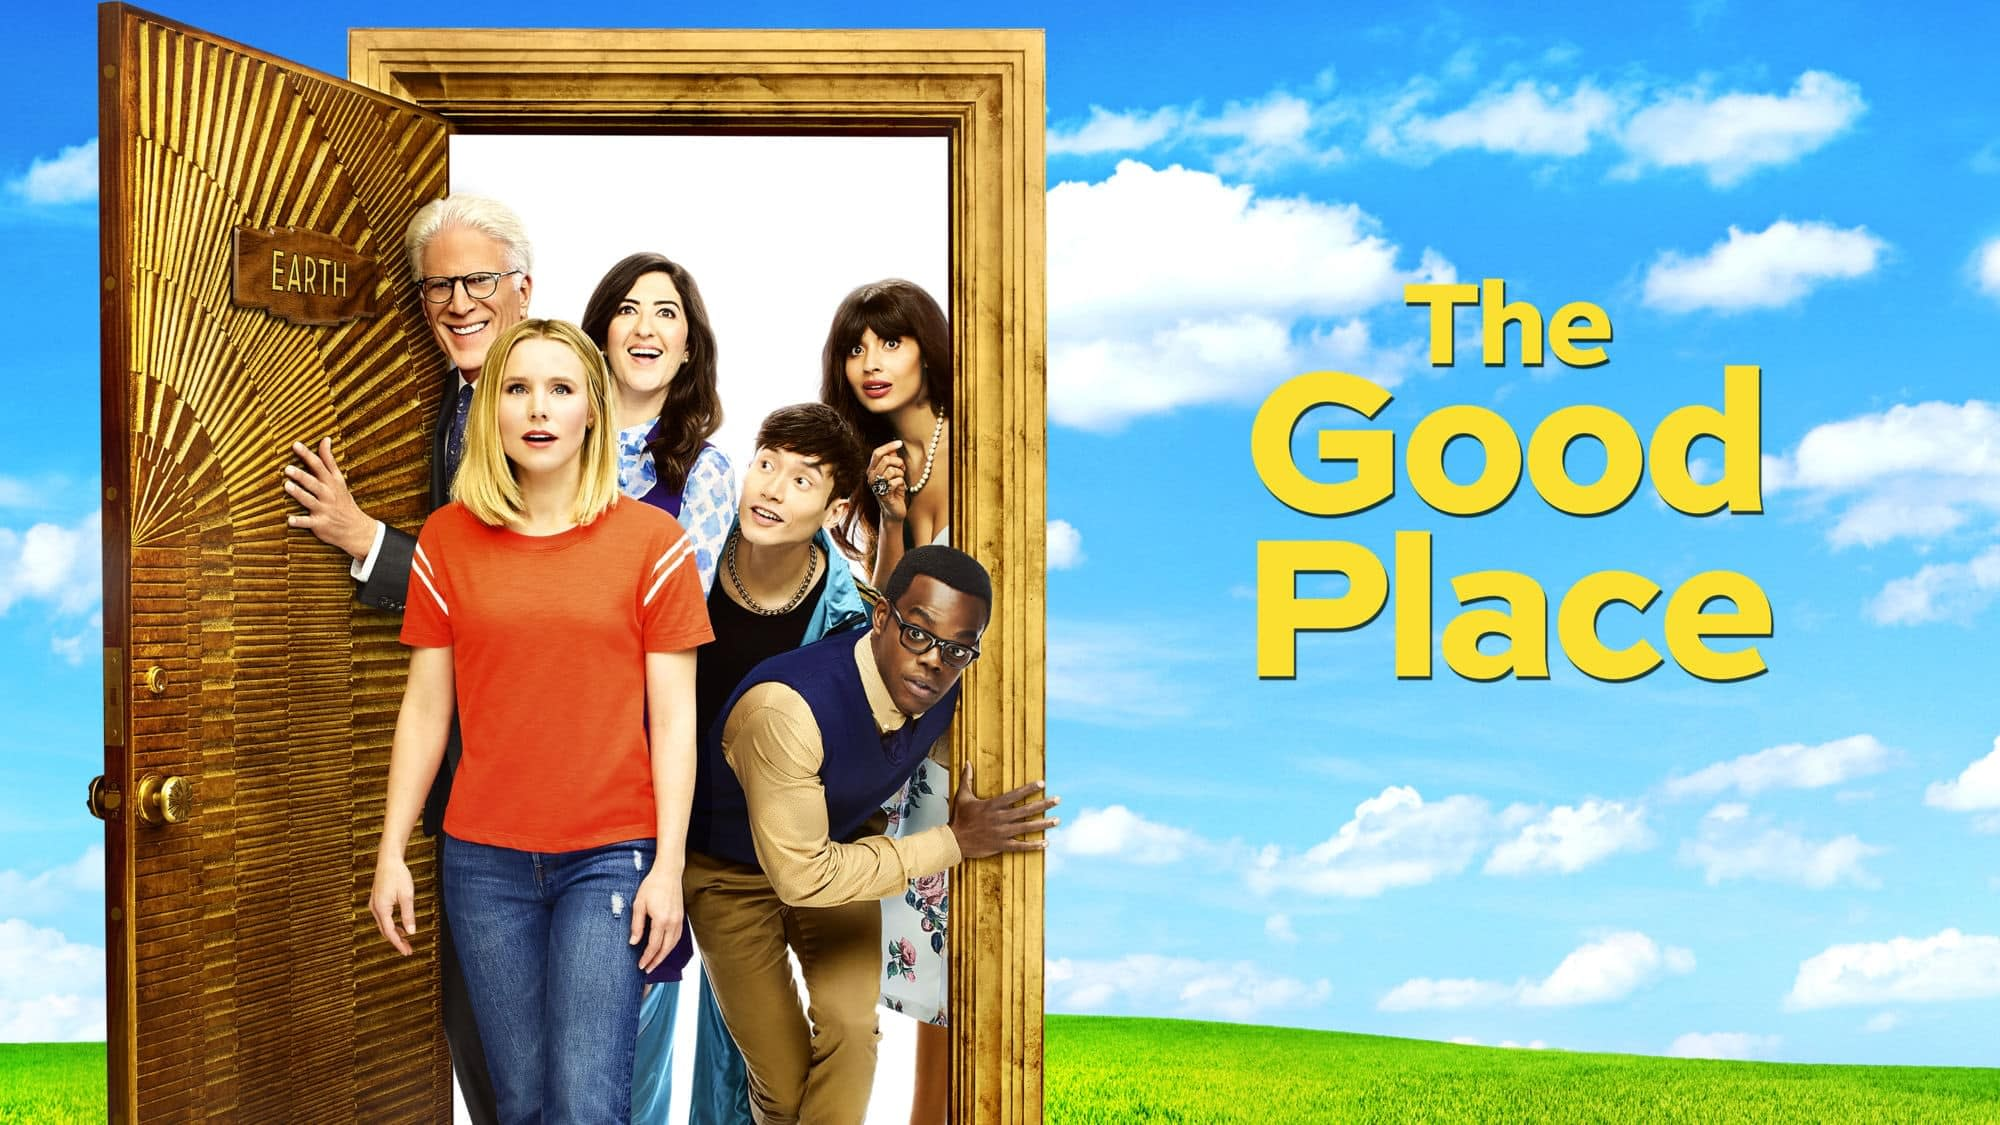 """The Good Place"" Season 4: Mike Schur Teases Characters, Old and New"